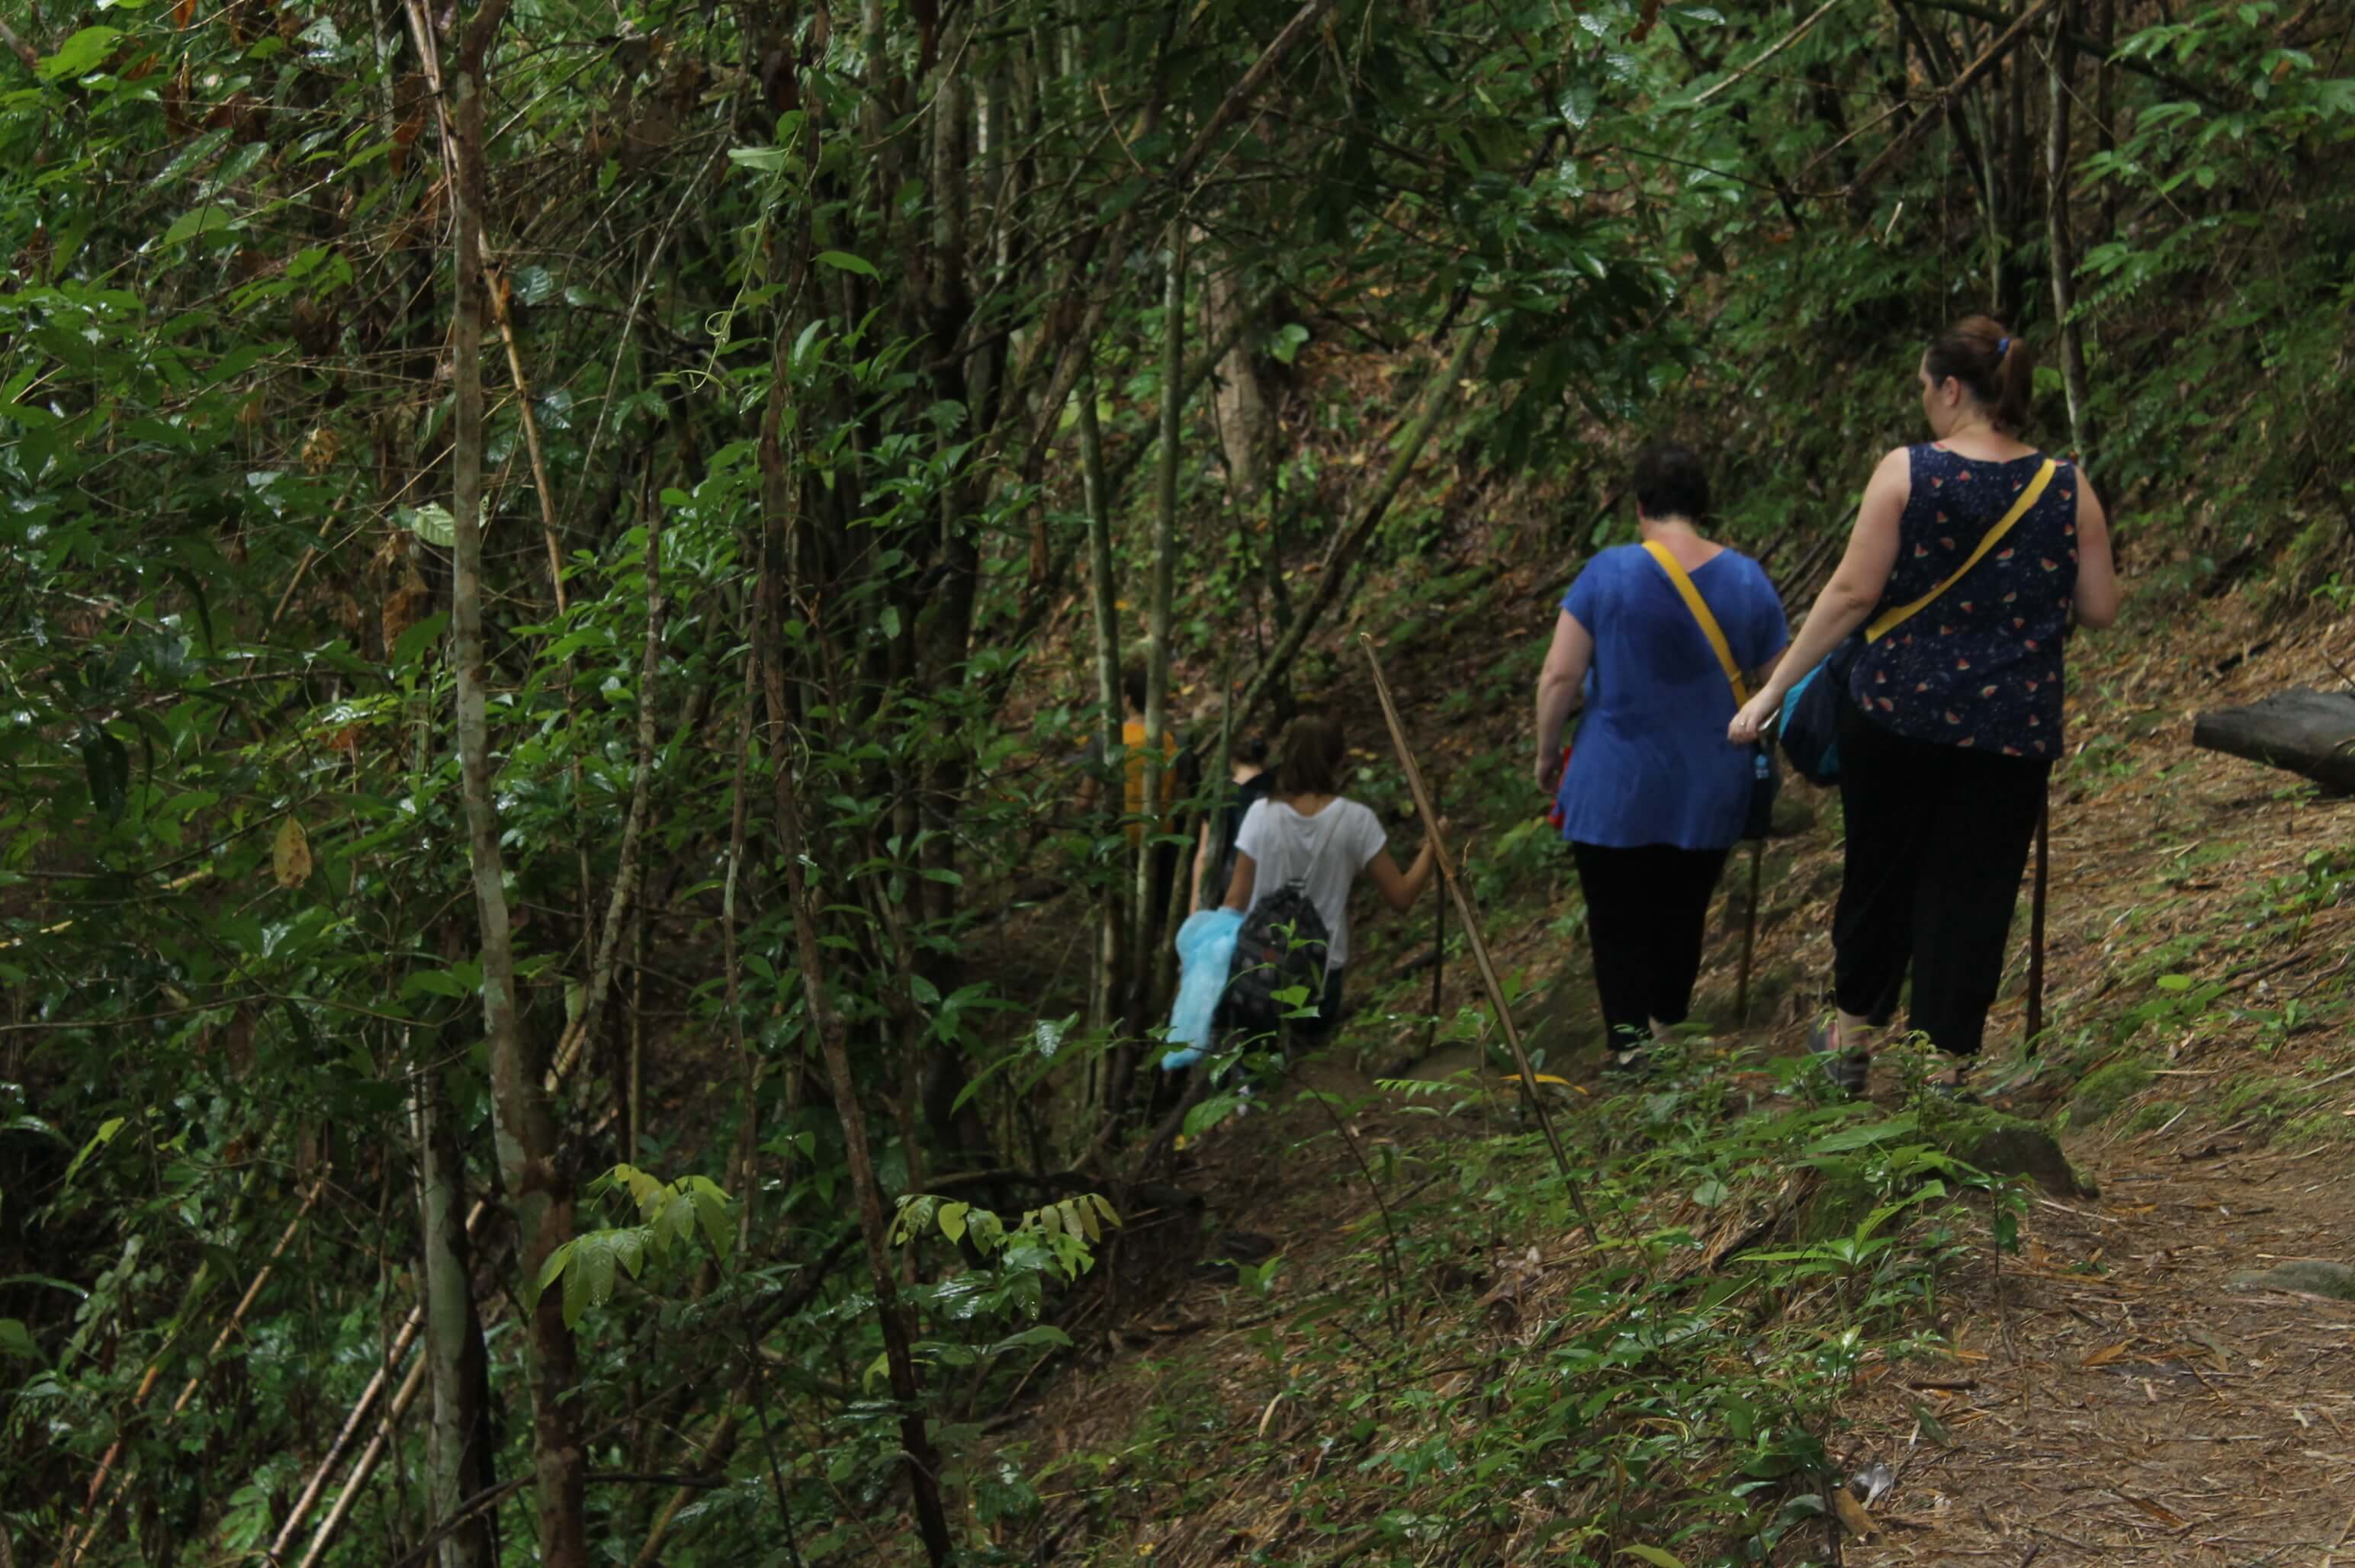 trekking in Pha Daeng National Park